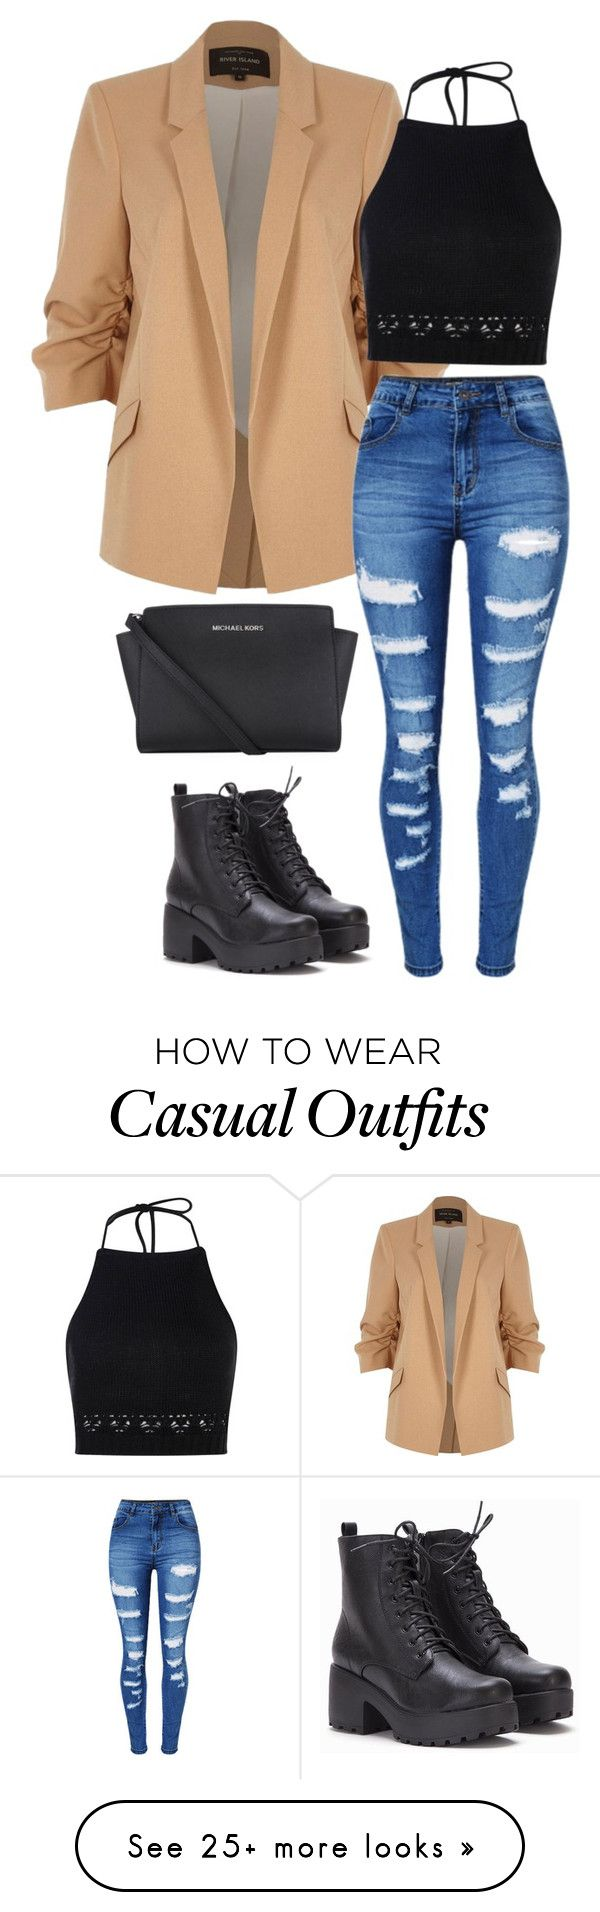 """Casual date night"" by hueninanguyen on Polyvore featuring River Island, Boohoo, WithChic and Michael Kors"